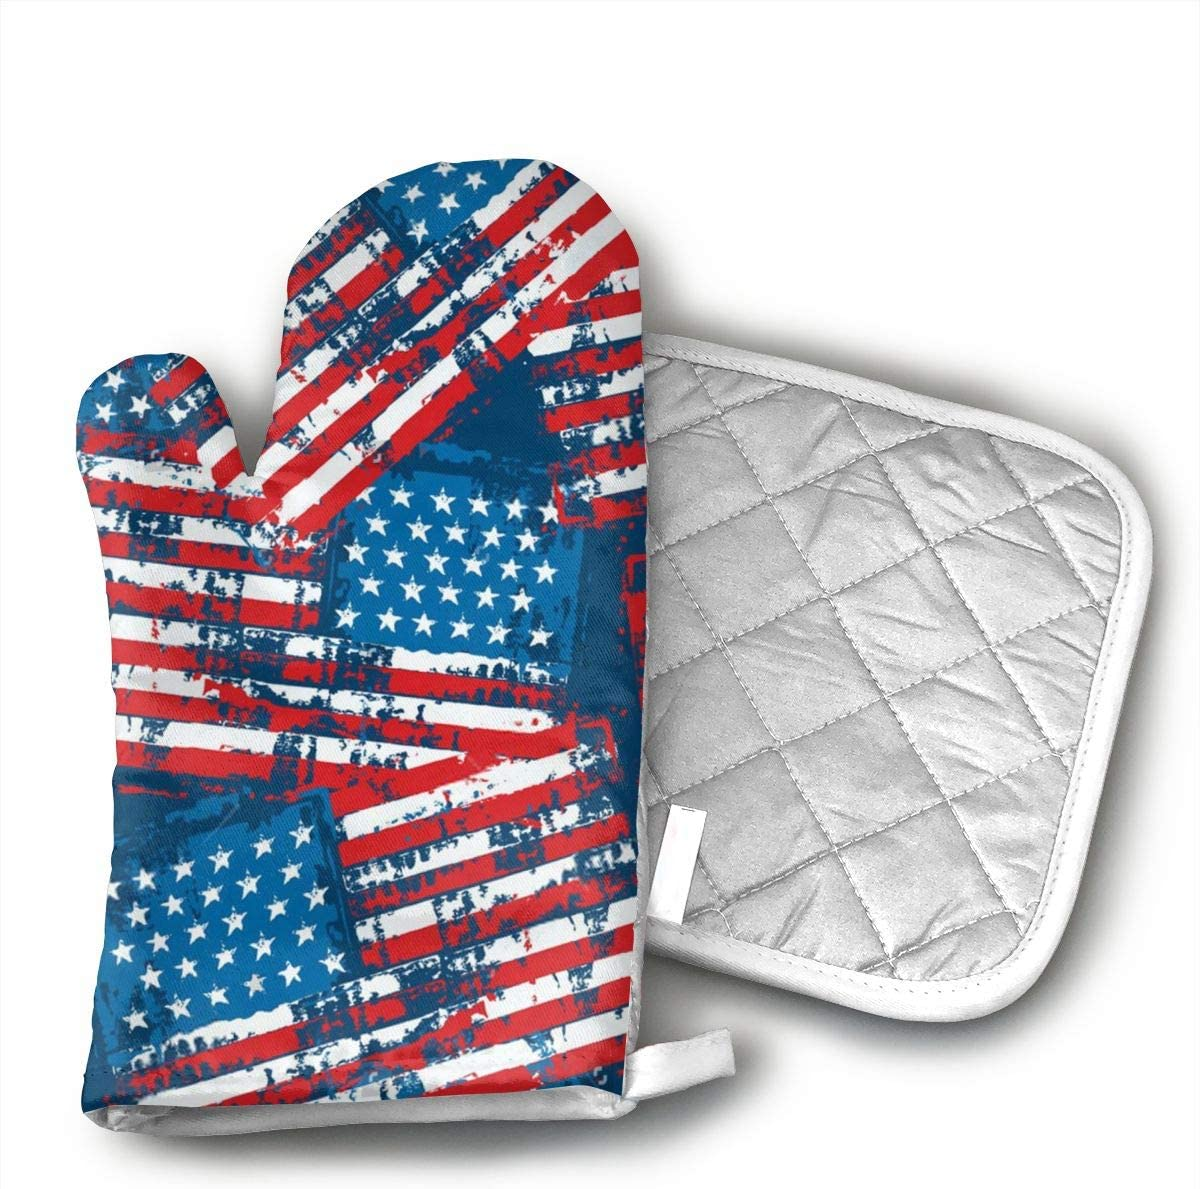 LCHKQR American Flag Patriotic Premium Heat Resistant Oven Hot Mitts,Professional Heat Resistant Baking Gloves - BBQ Oven Gloves for Kitchen Cooking, Baking, Grill